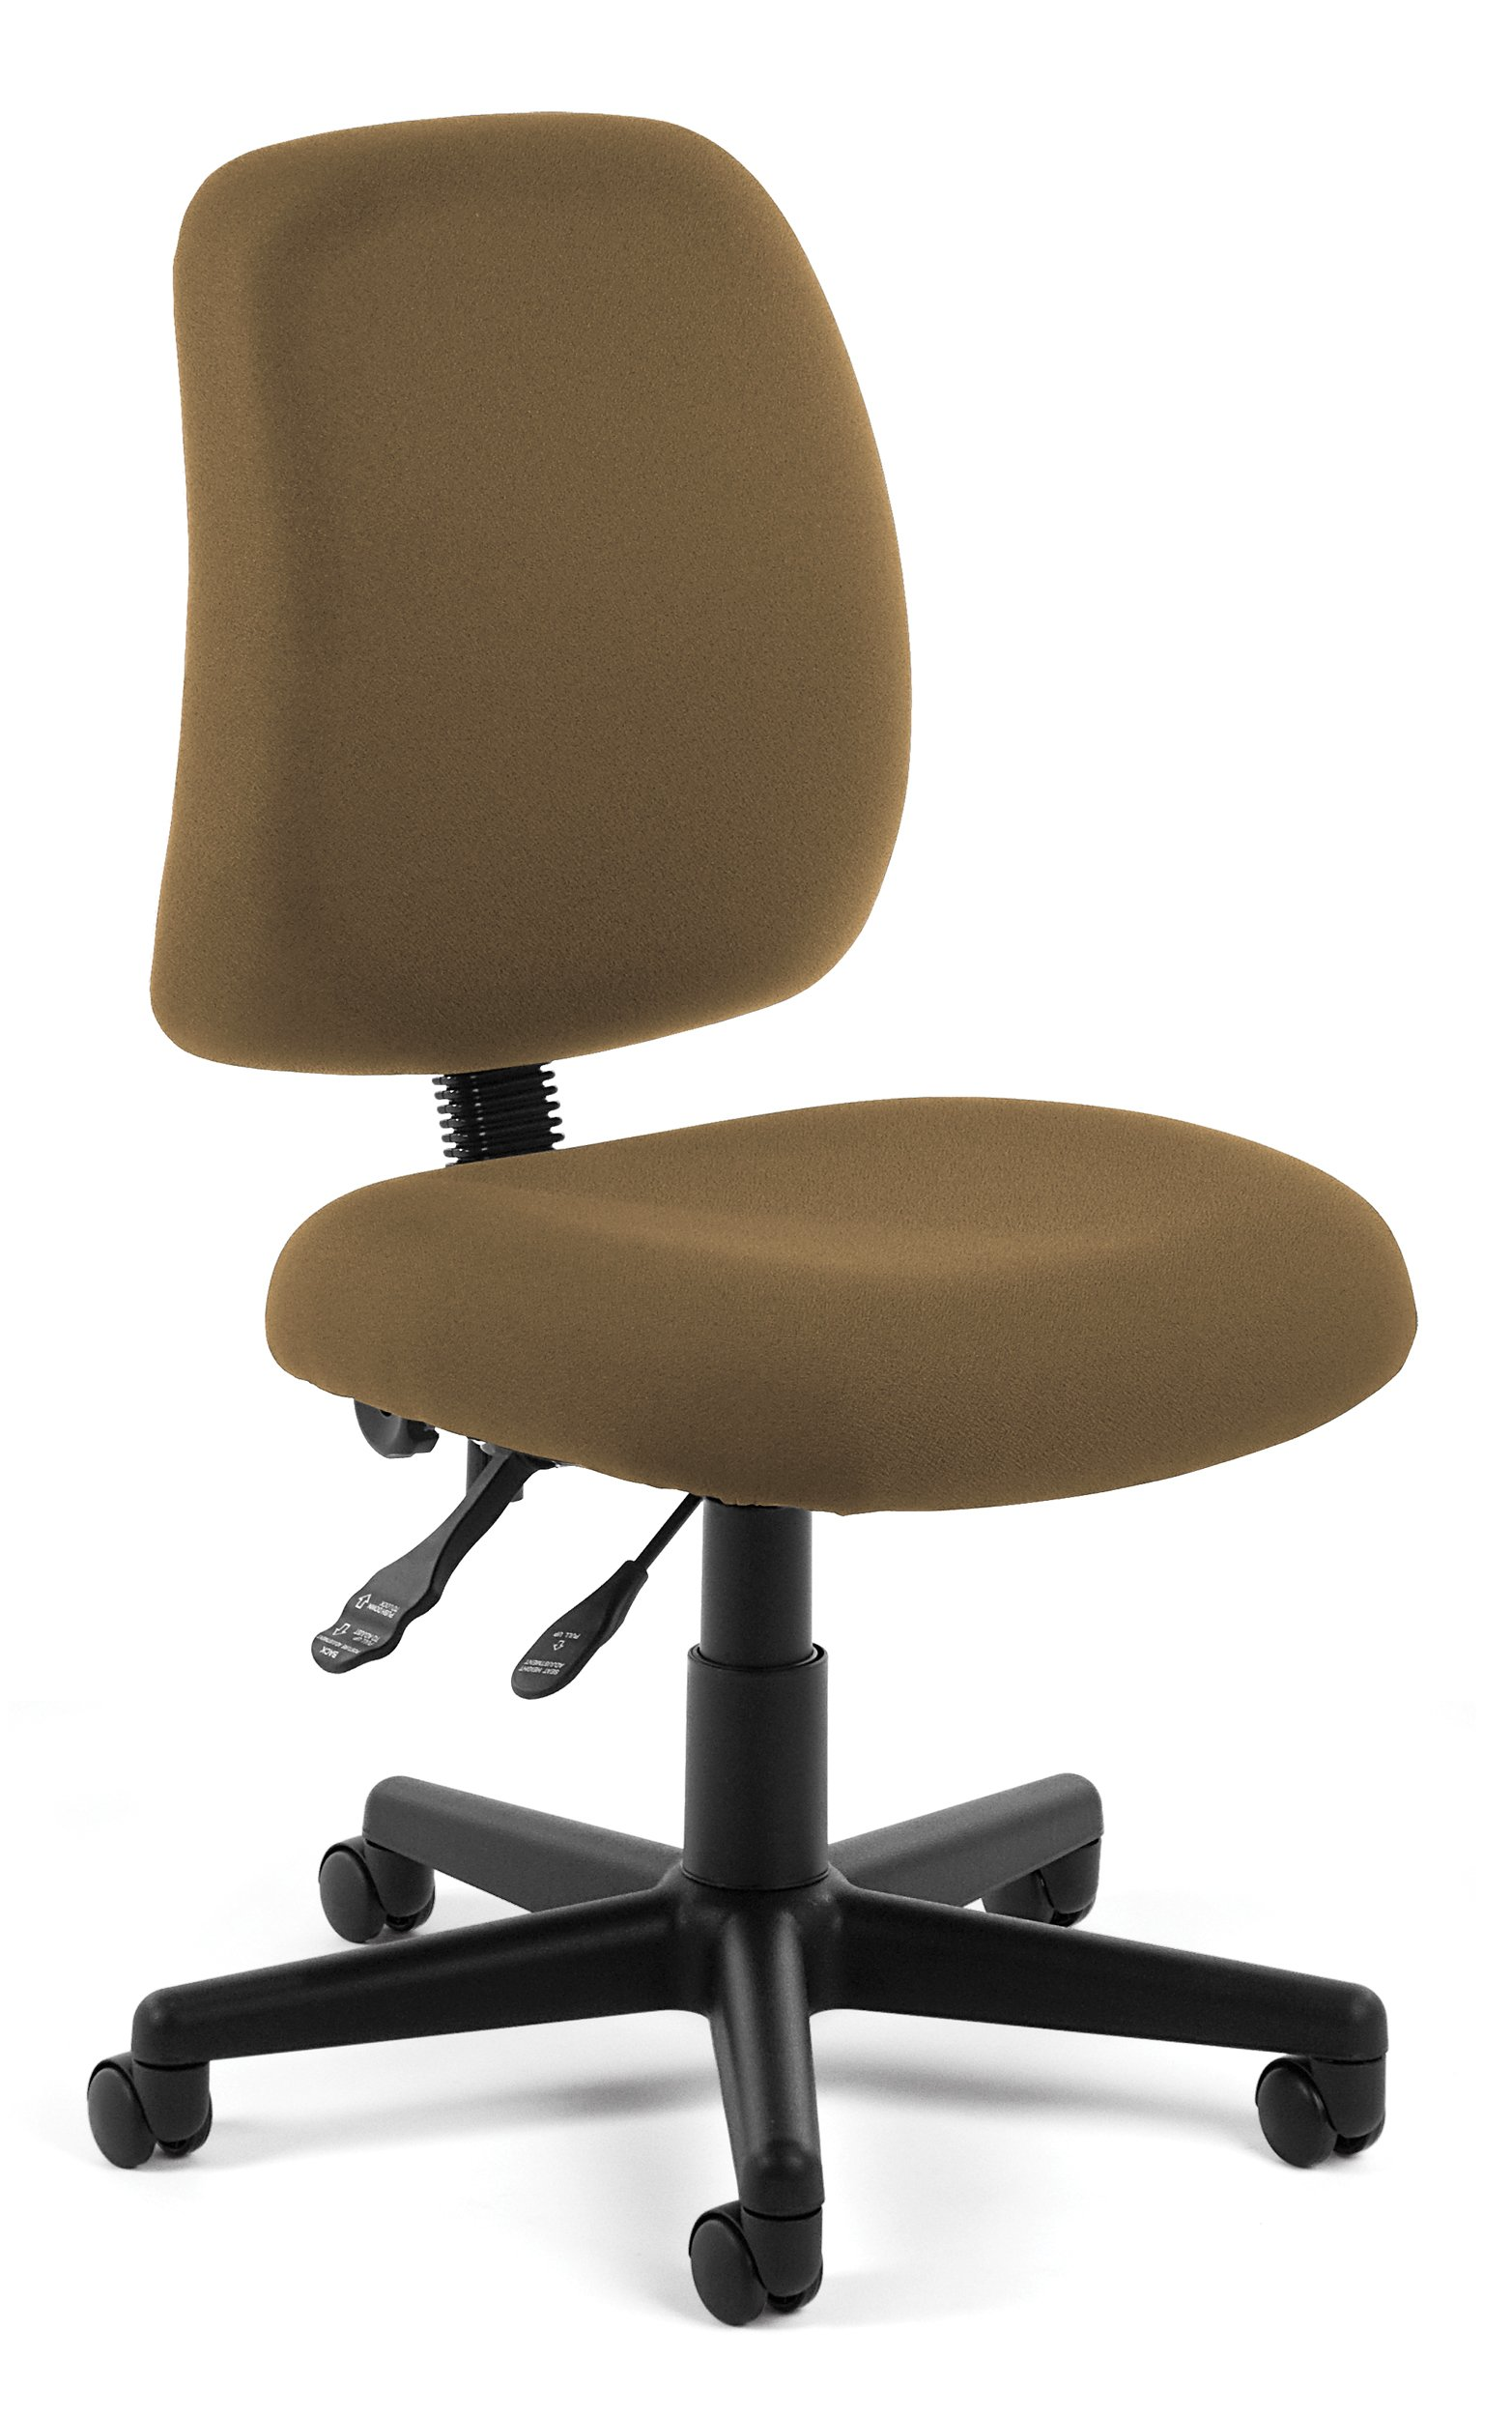 OFM Posture Series Armless Mid Back Task Chair - Stain Resistant Fabric Swivel Chair, Taupe (118-2)